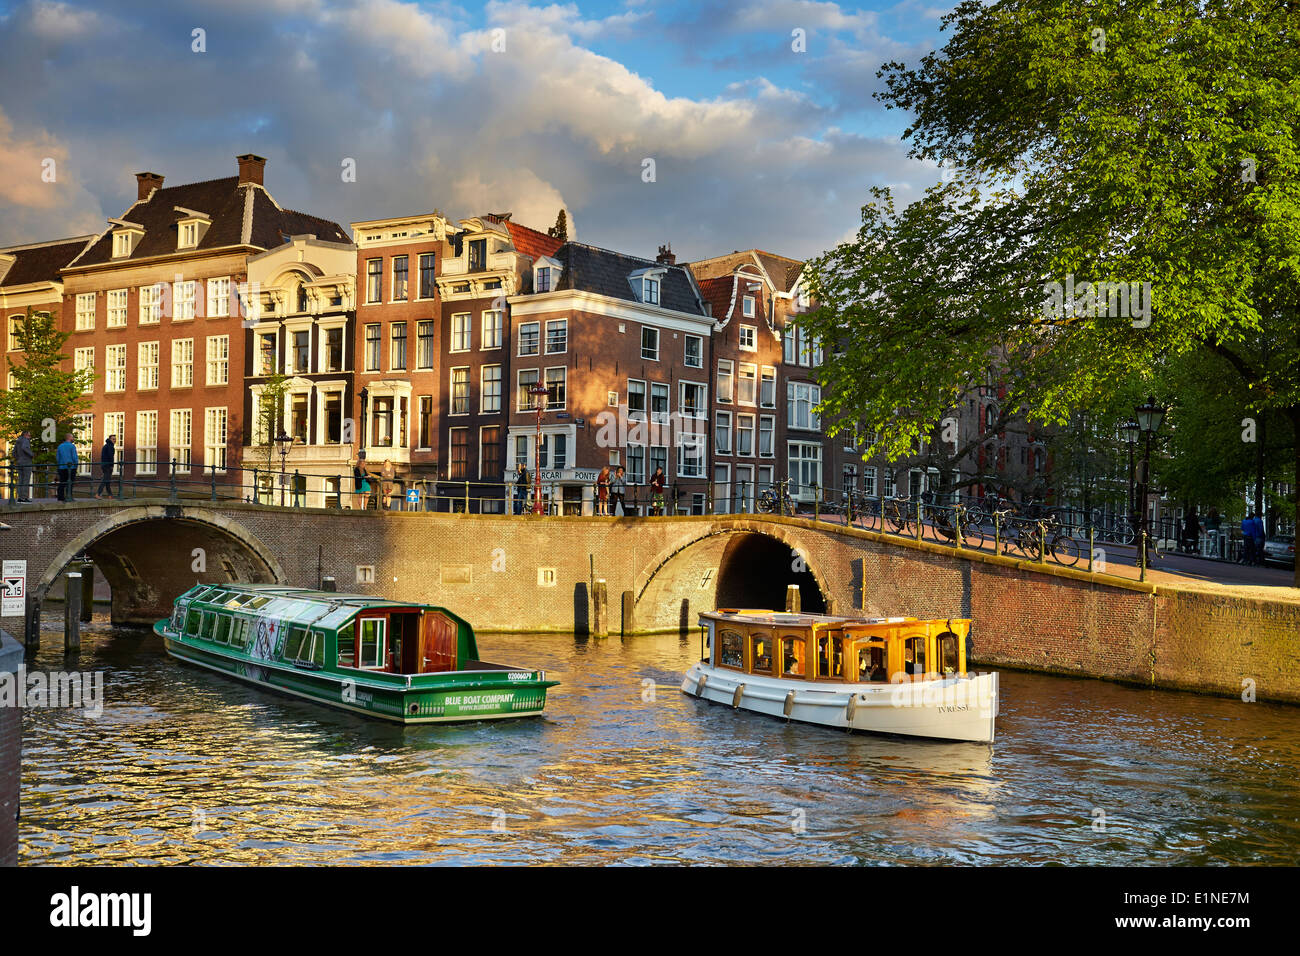 Tourist boat at Amsterdam bridge canal - Holland, Netherlands - Stock Image